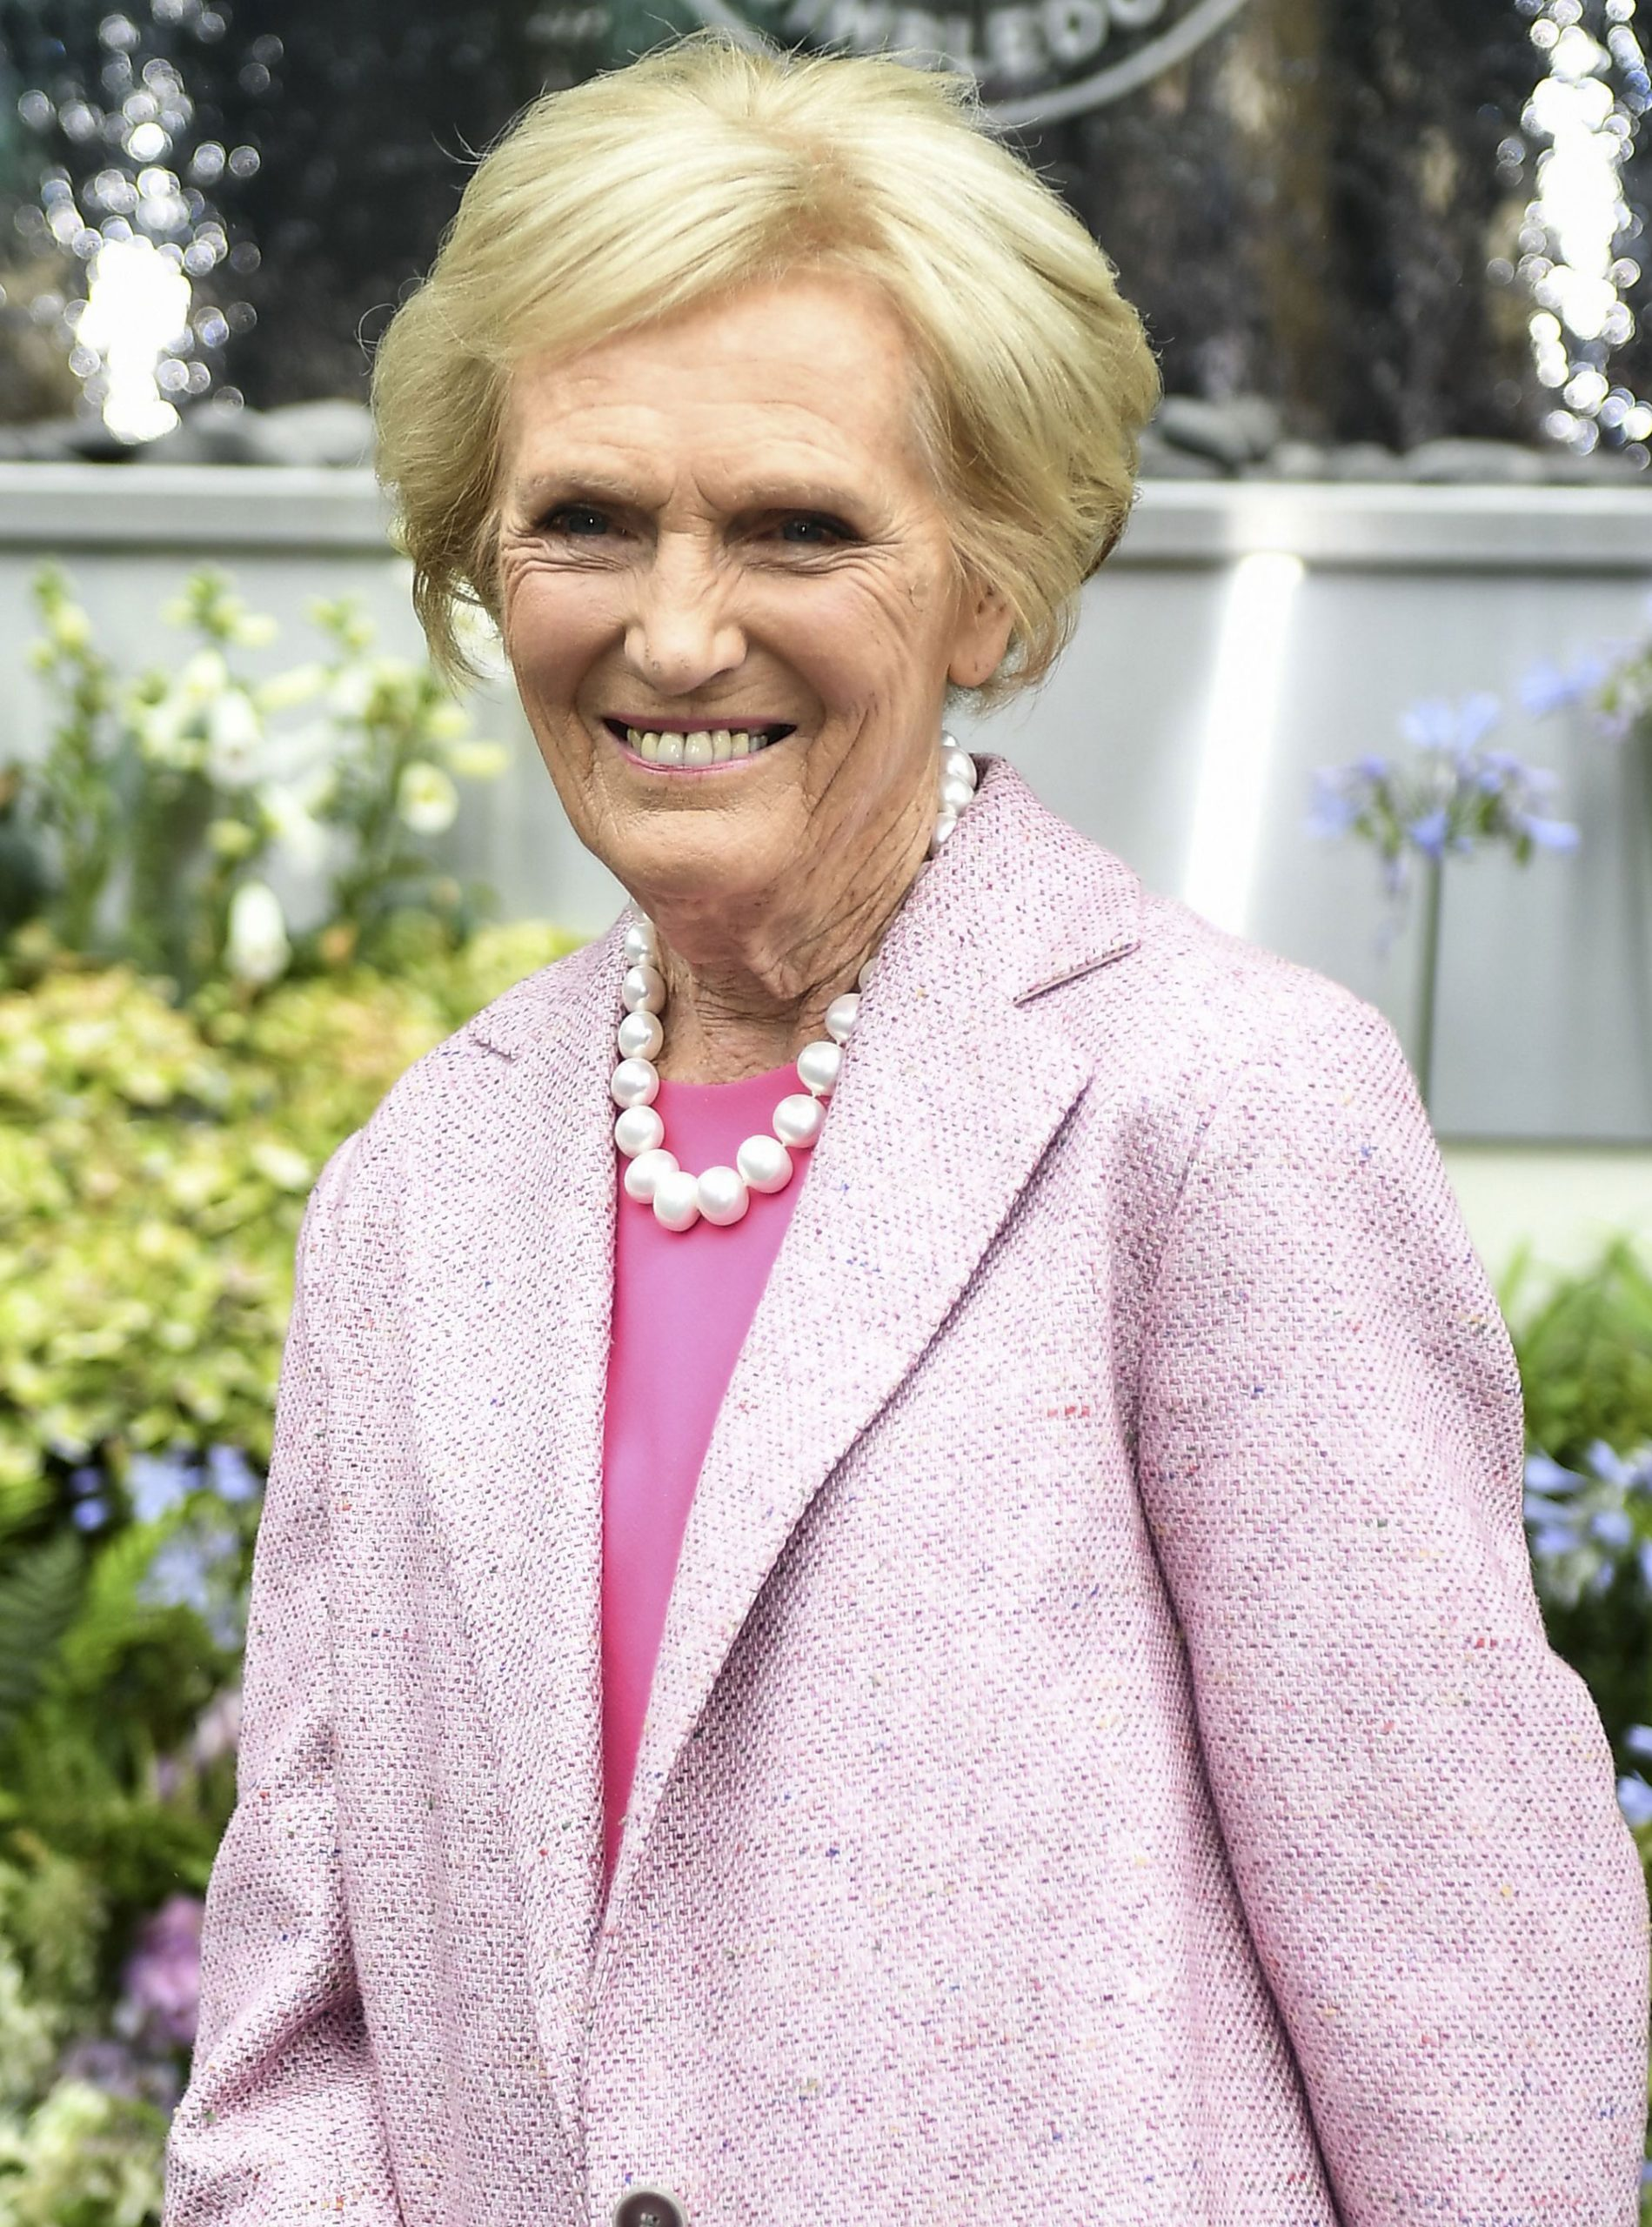 Mary Berry Age At 82 The Baker Insists She Ll Never Have Botox And Talks Embracing Natural Beauty